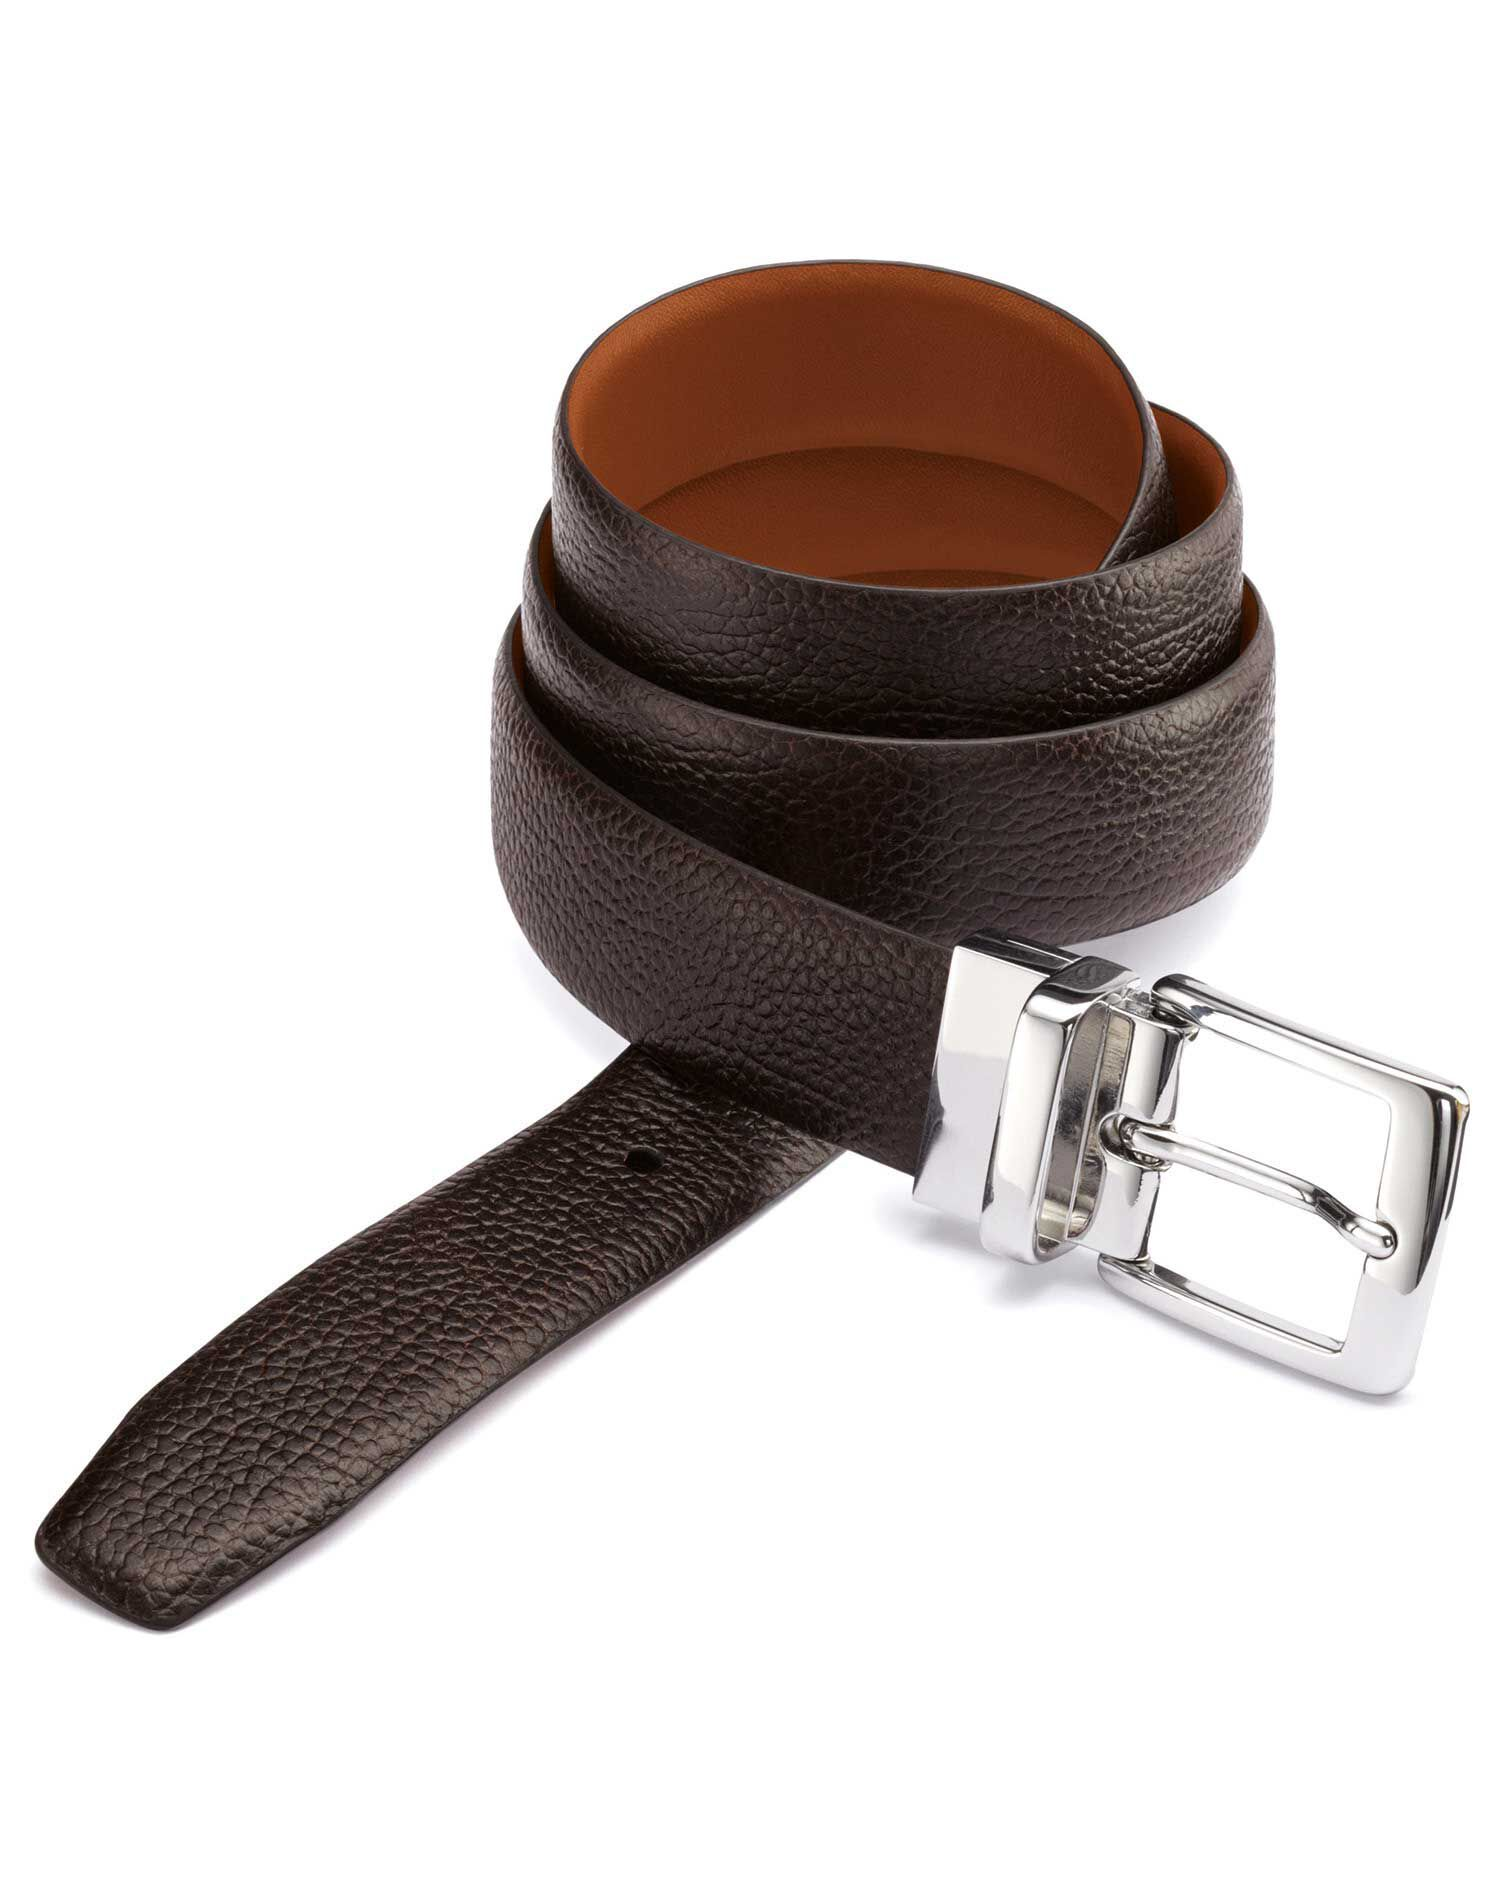 Brown and Tan Reversible Belt Size 34-36 by Charles Tyrwhitt